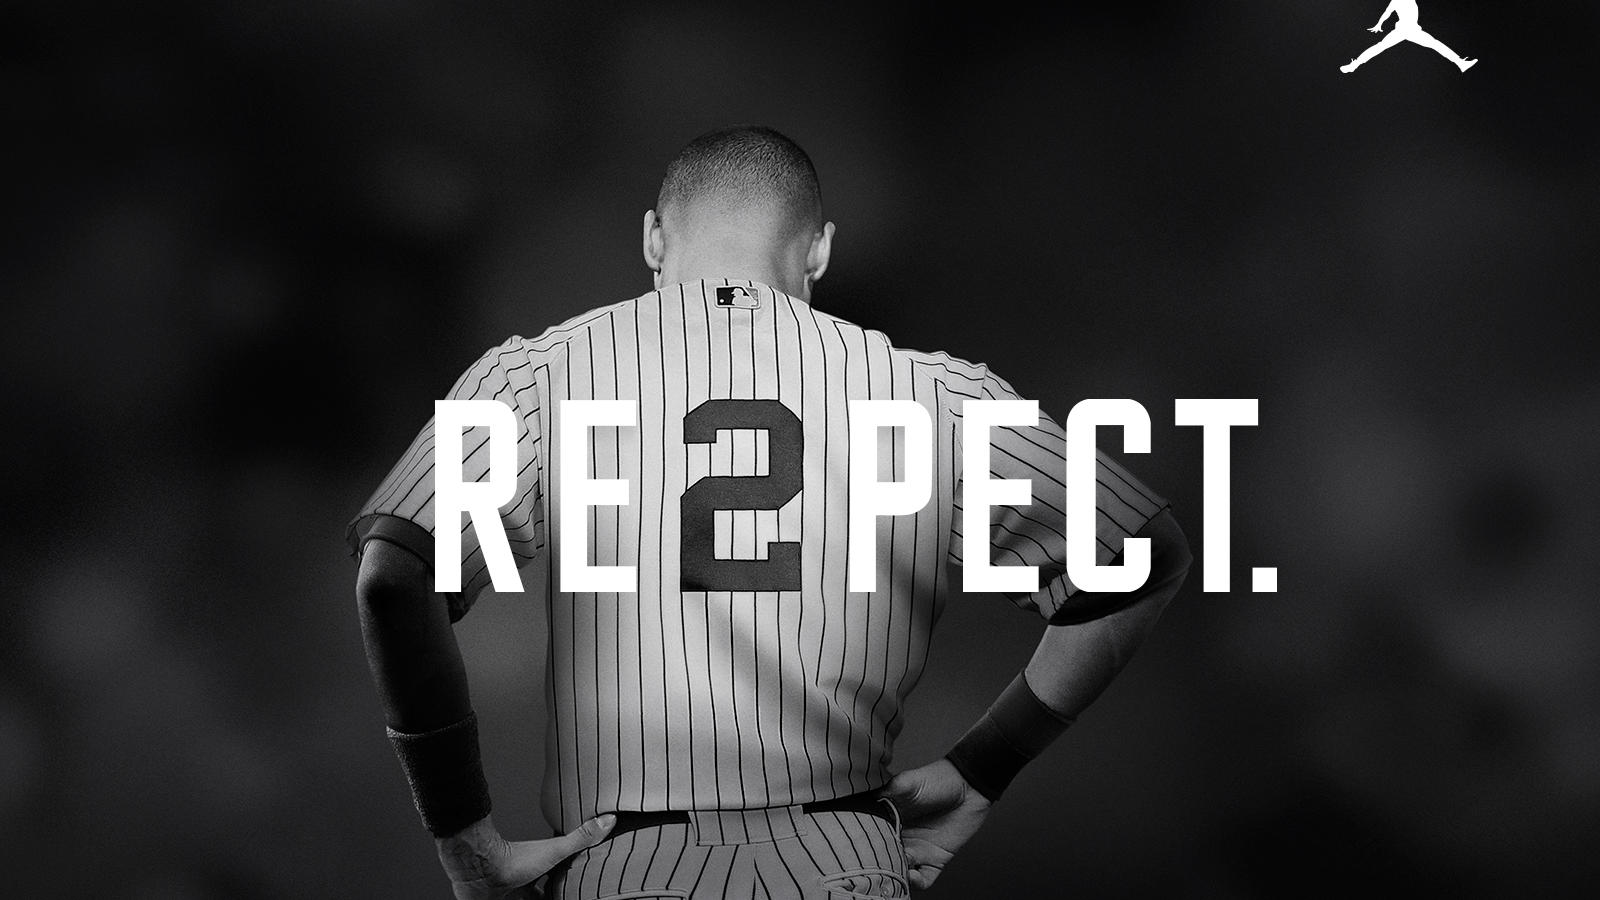 Jeter RE2PECT full